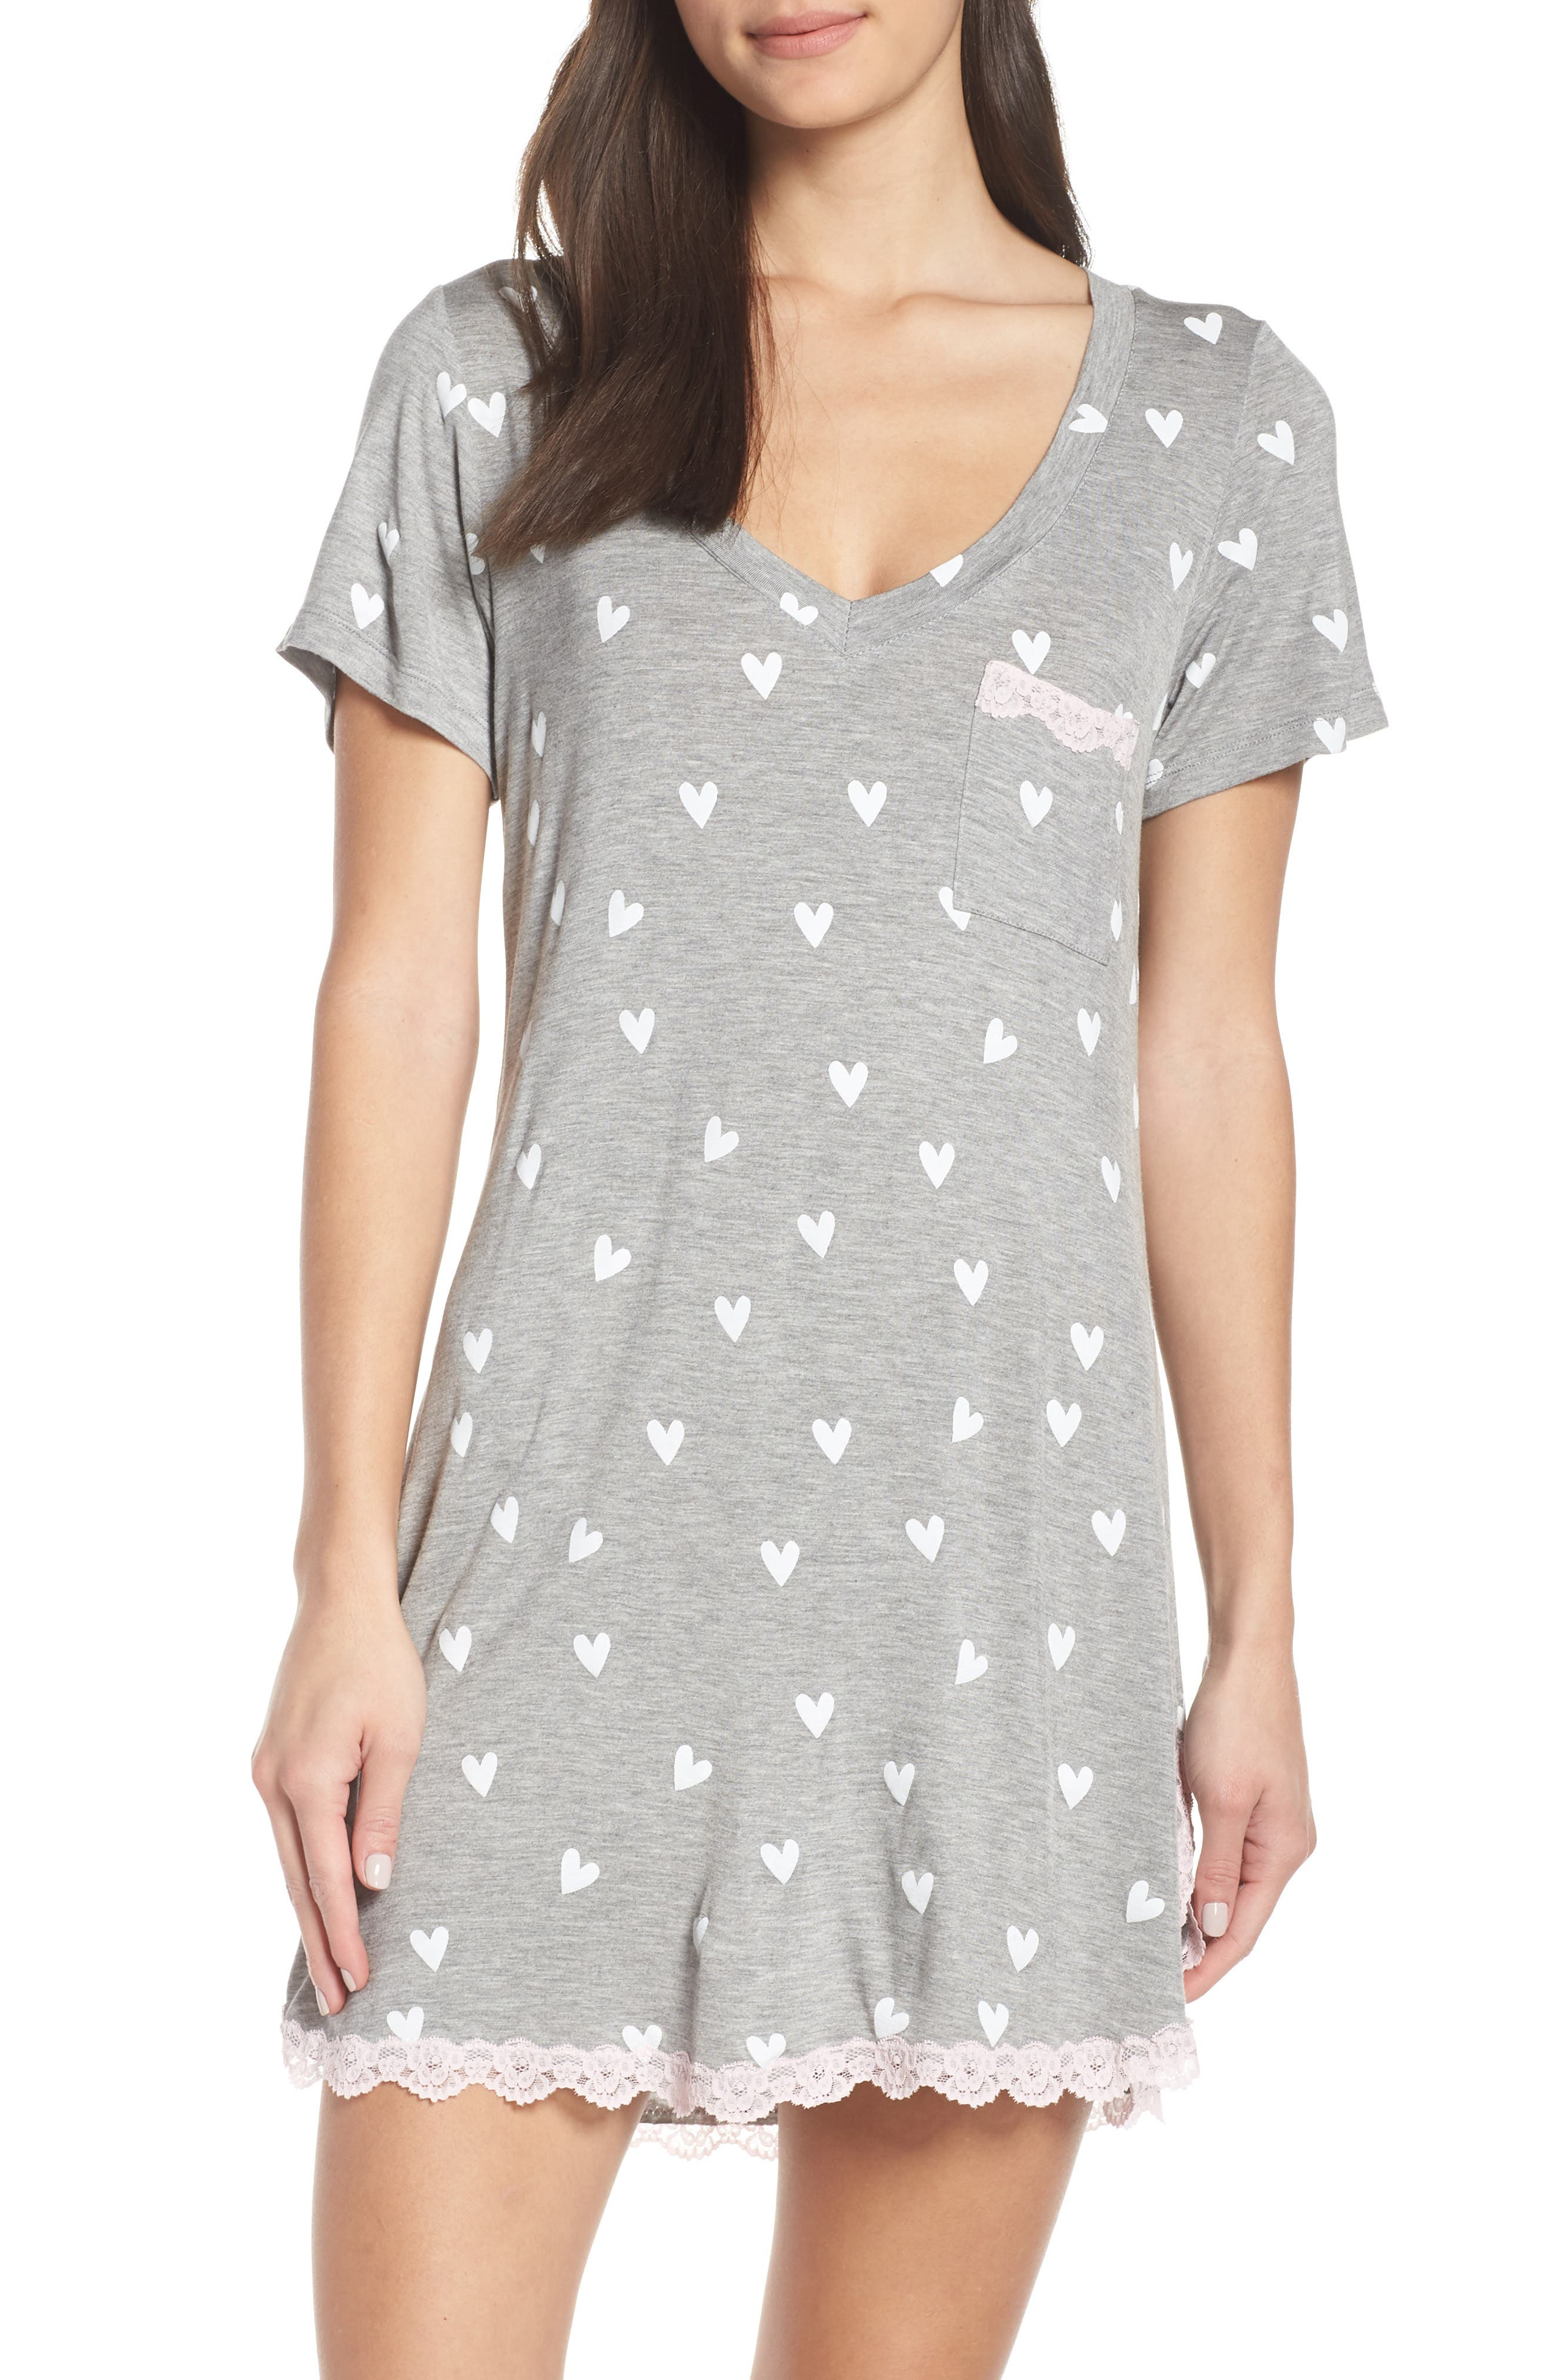 Honeydew Intimates 'All American' Sleep Shirt (2 for $60)